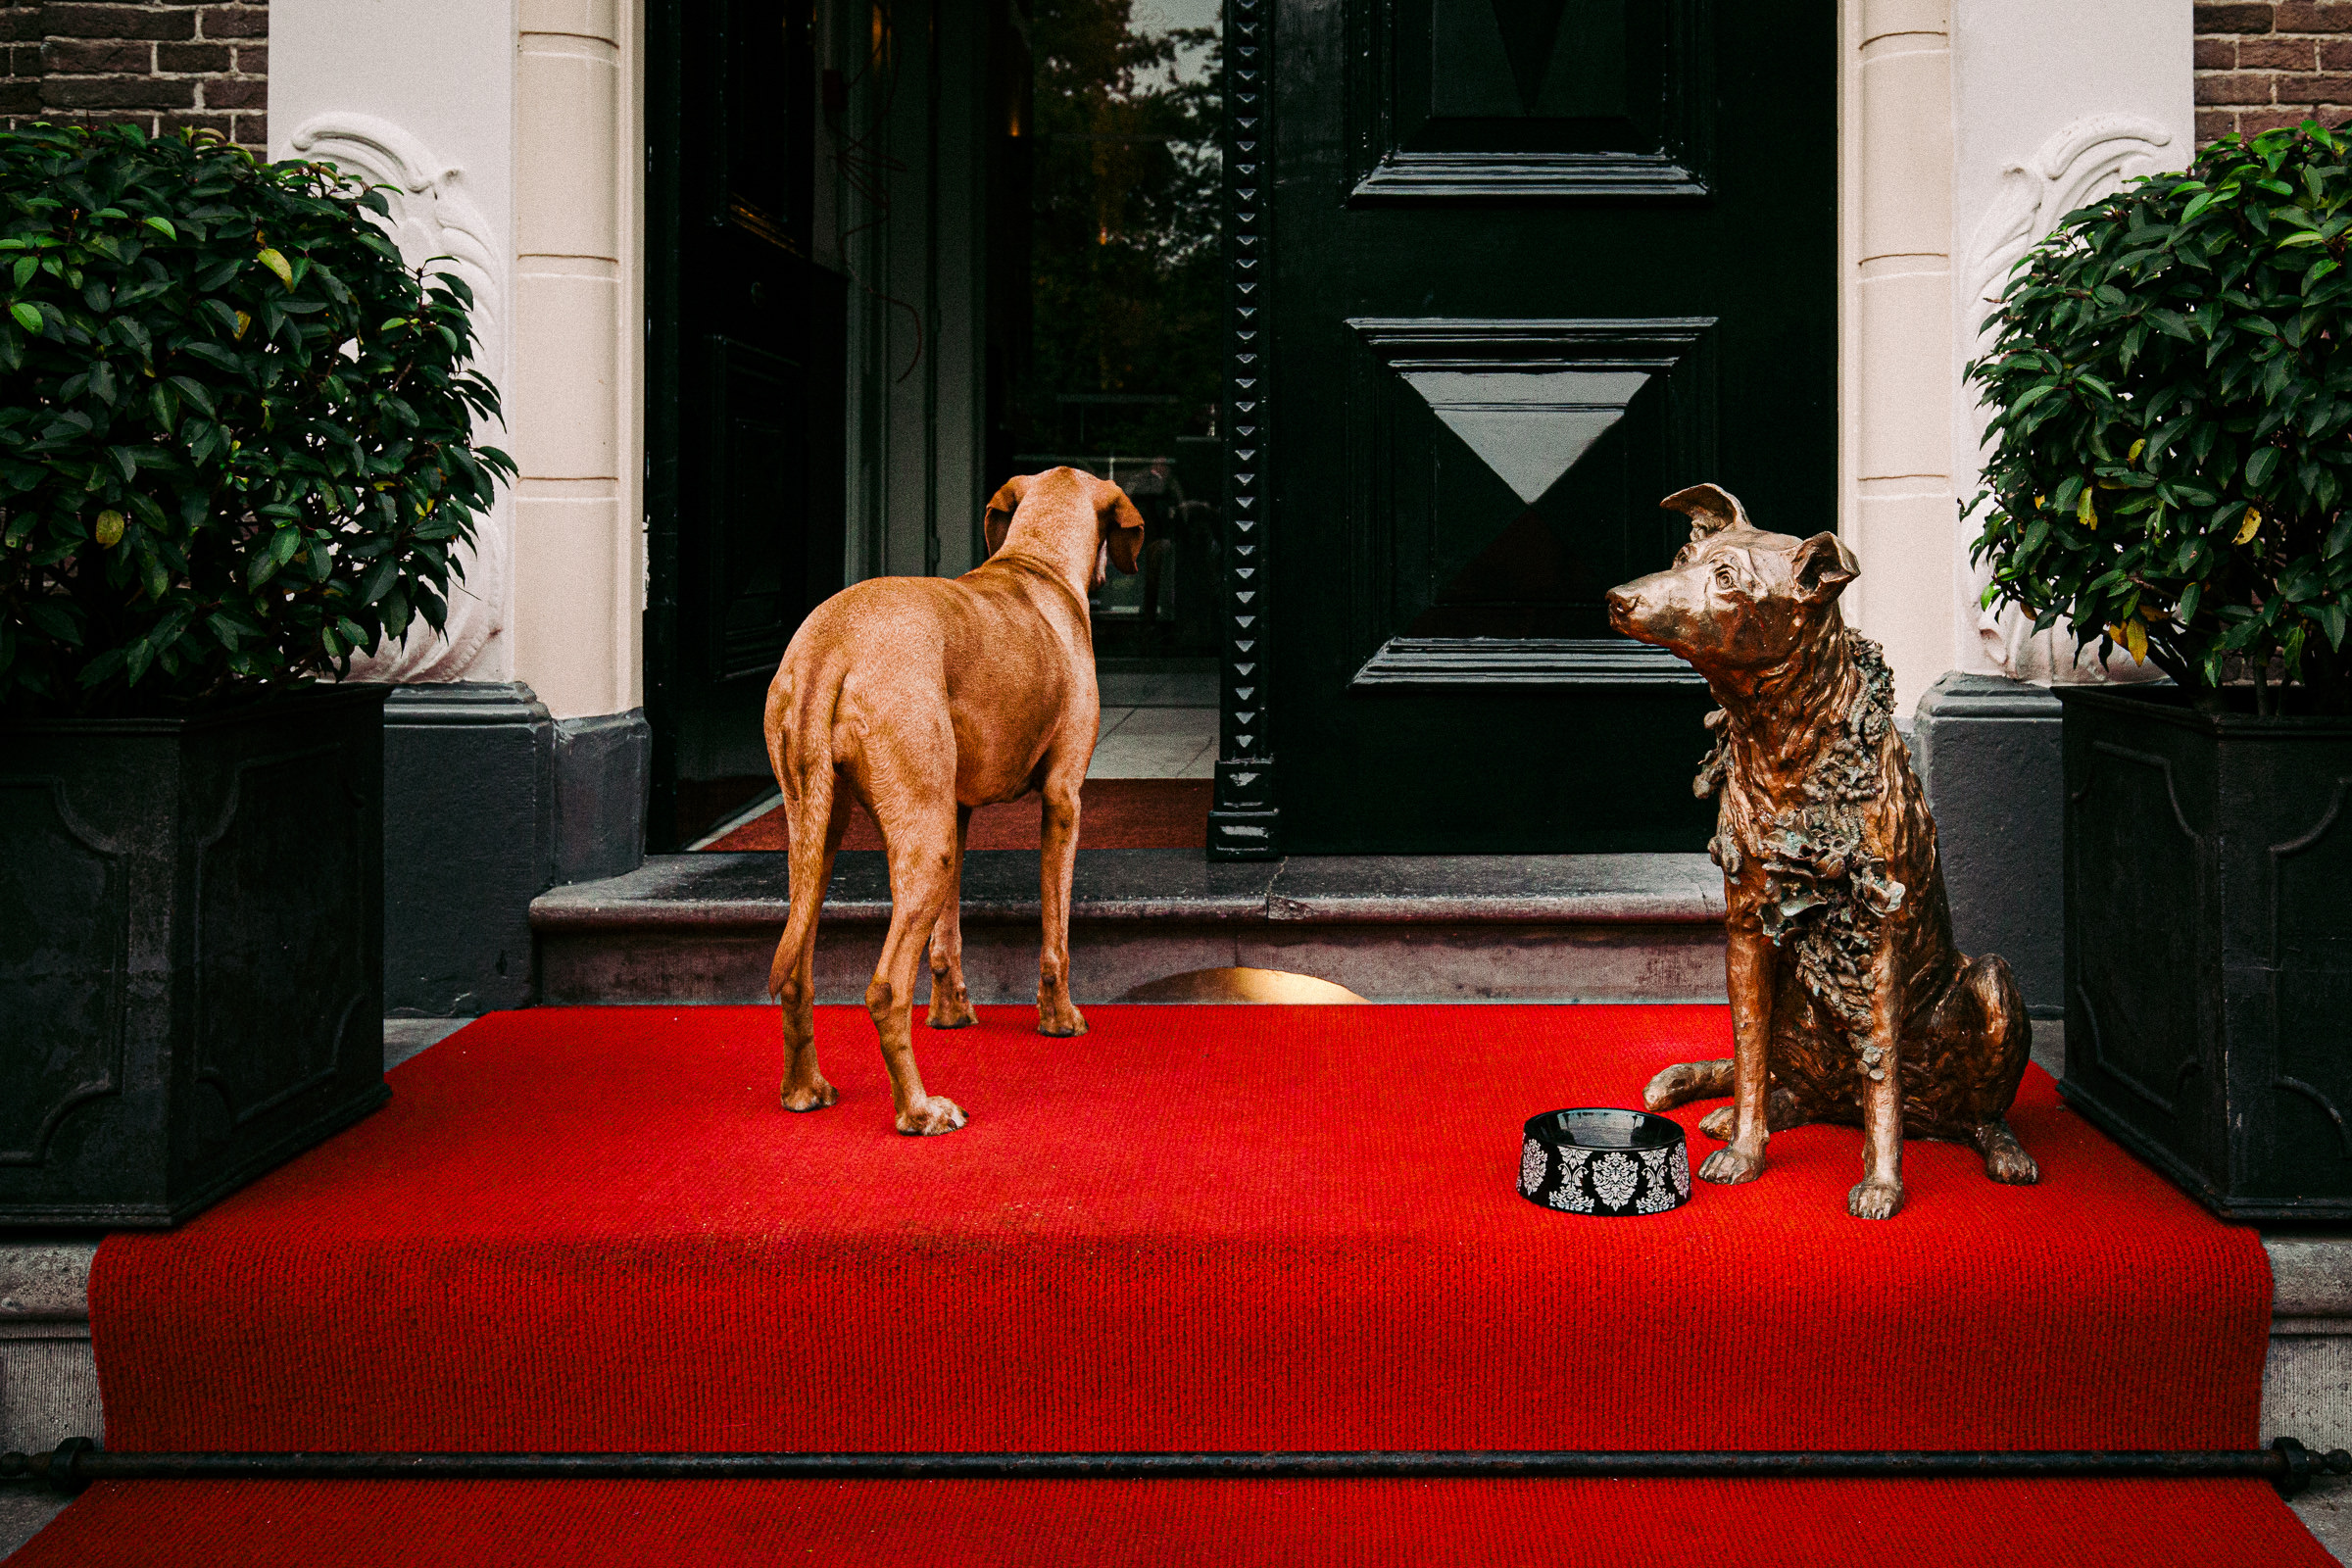 Dog and dog sculpture on the red carpet - photo by Peter van der Lingen Wedding Photography